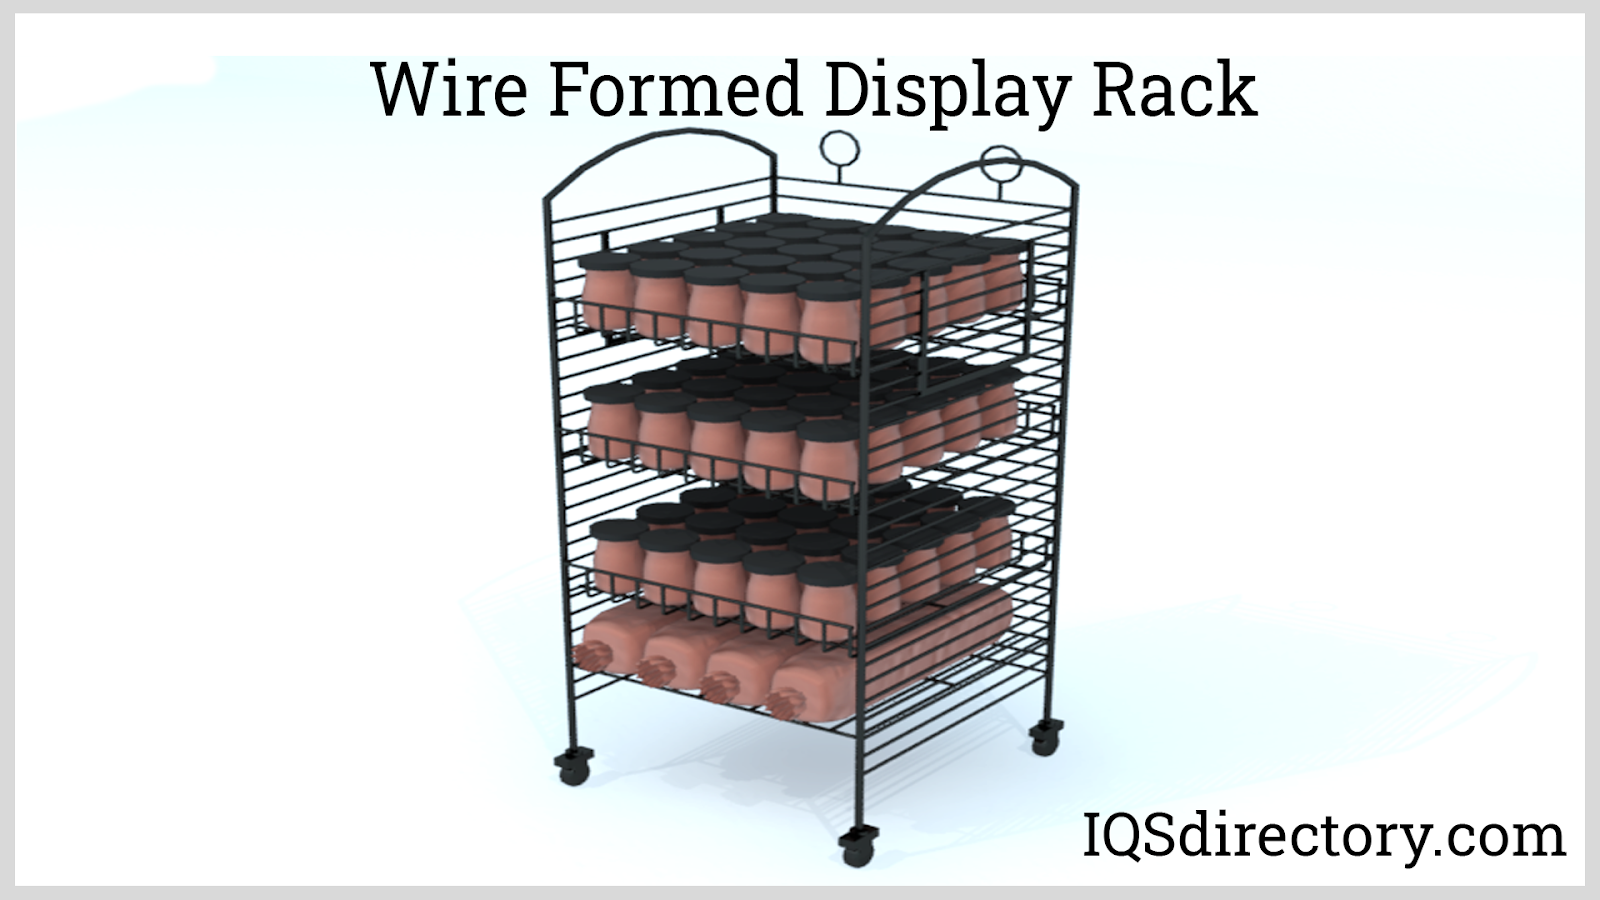 Wire Formed Display Rack